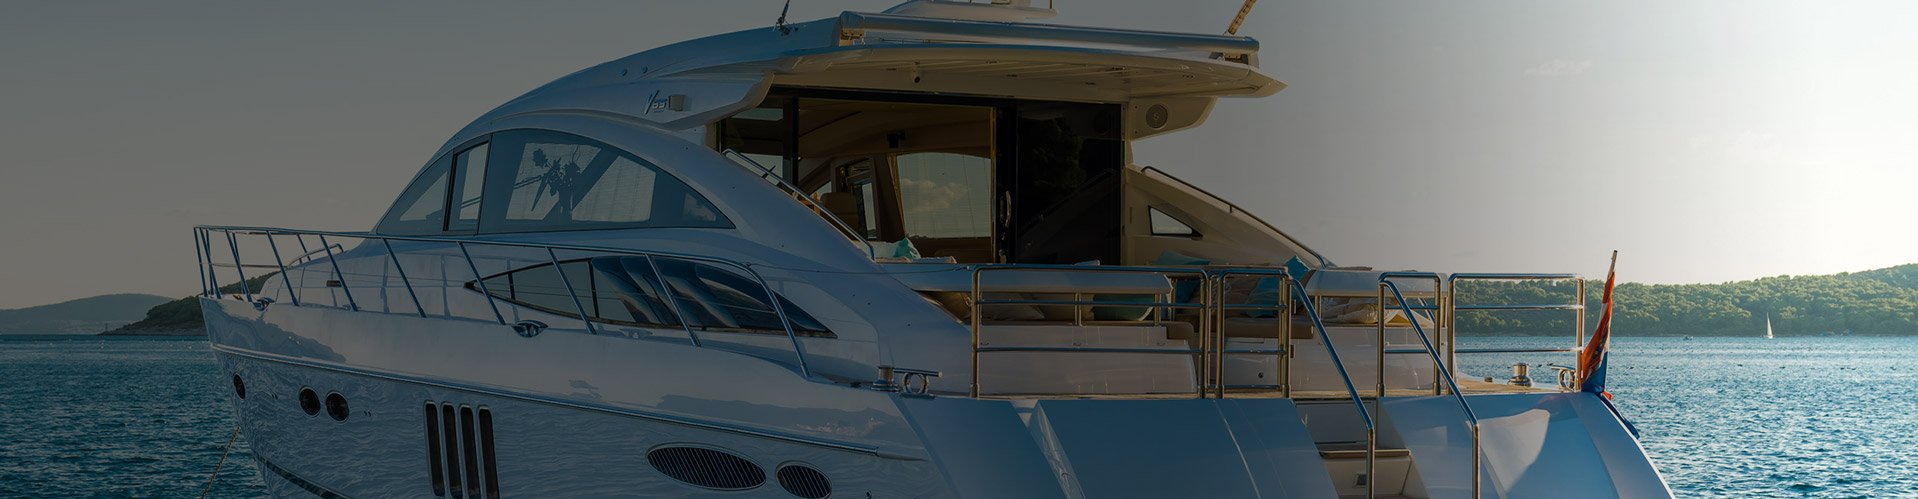 Complete range of motor yachts and power boats in Croatia.